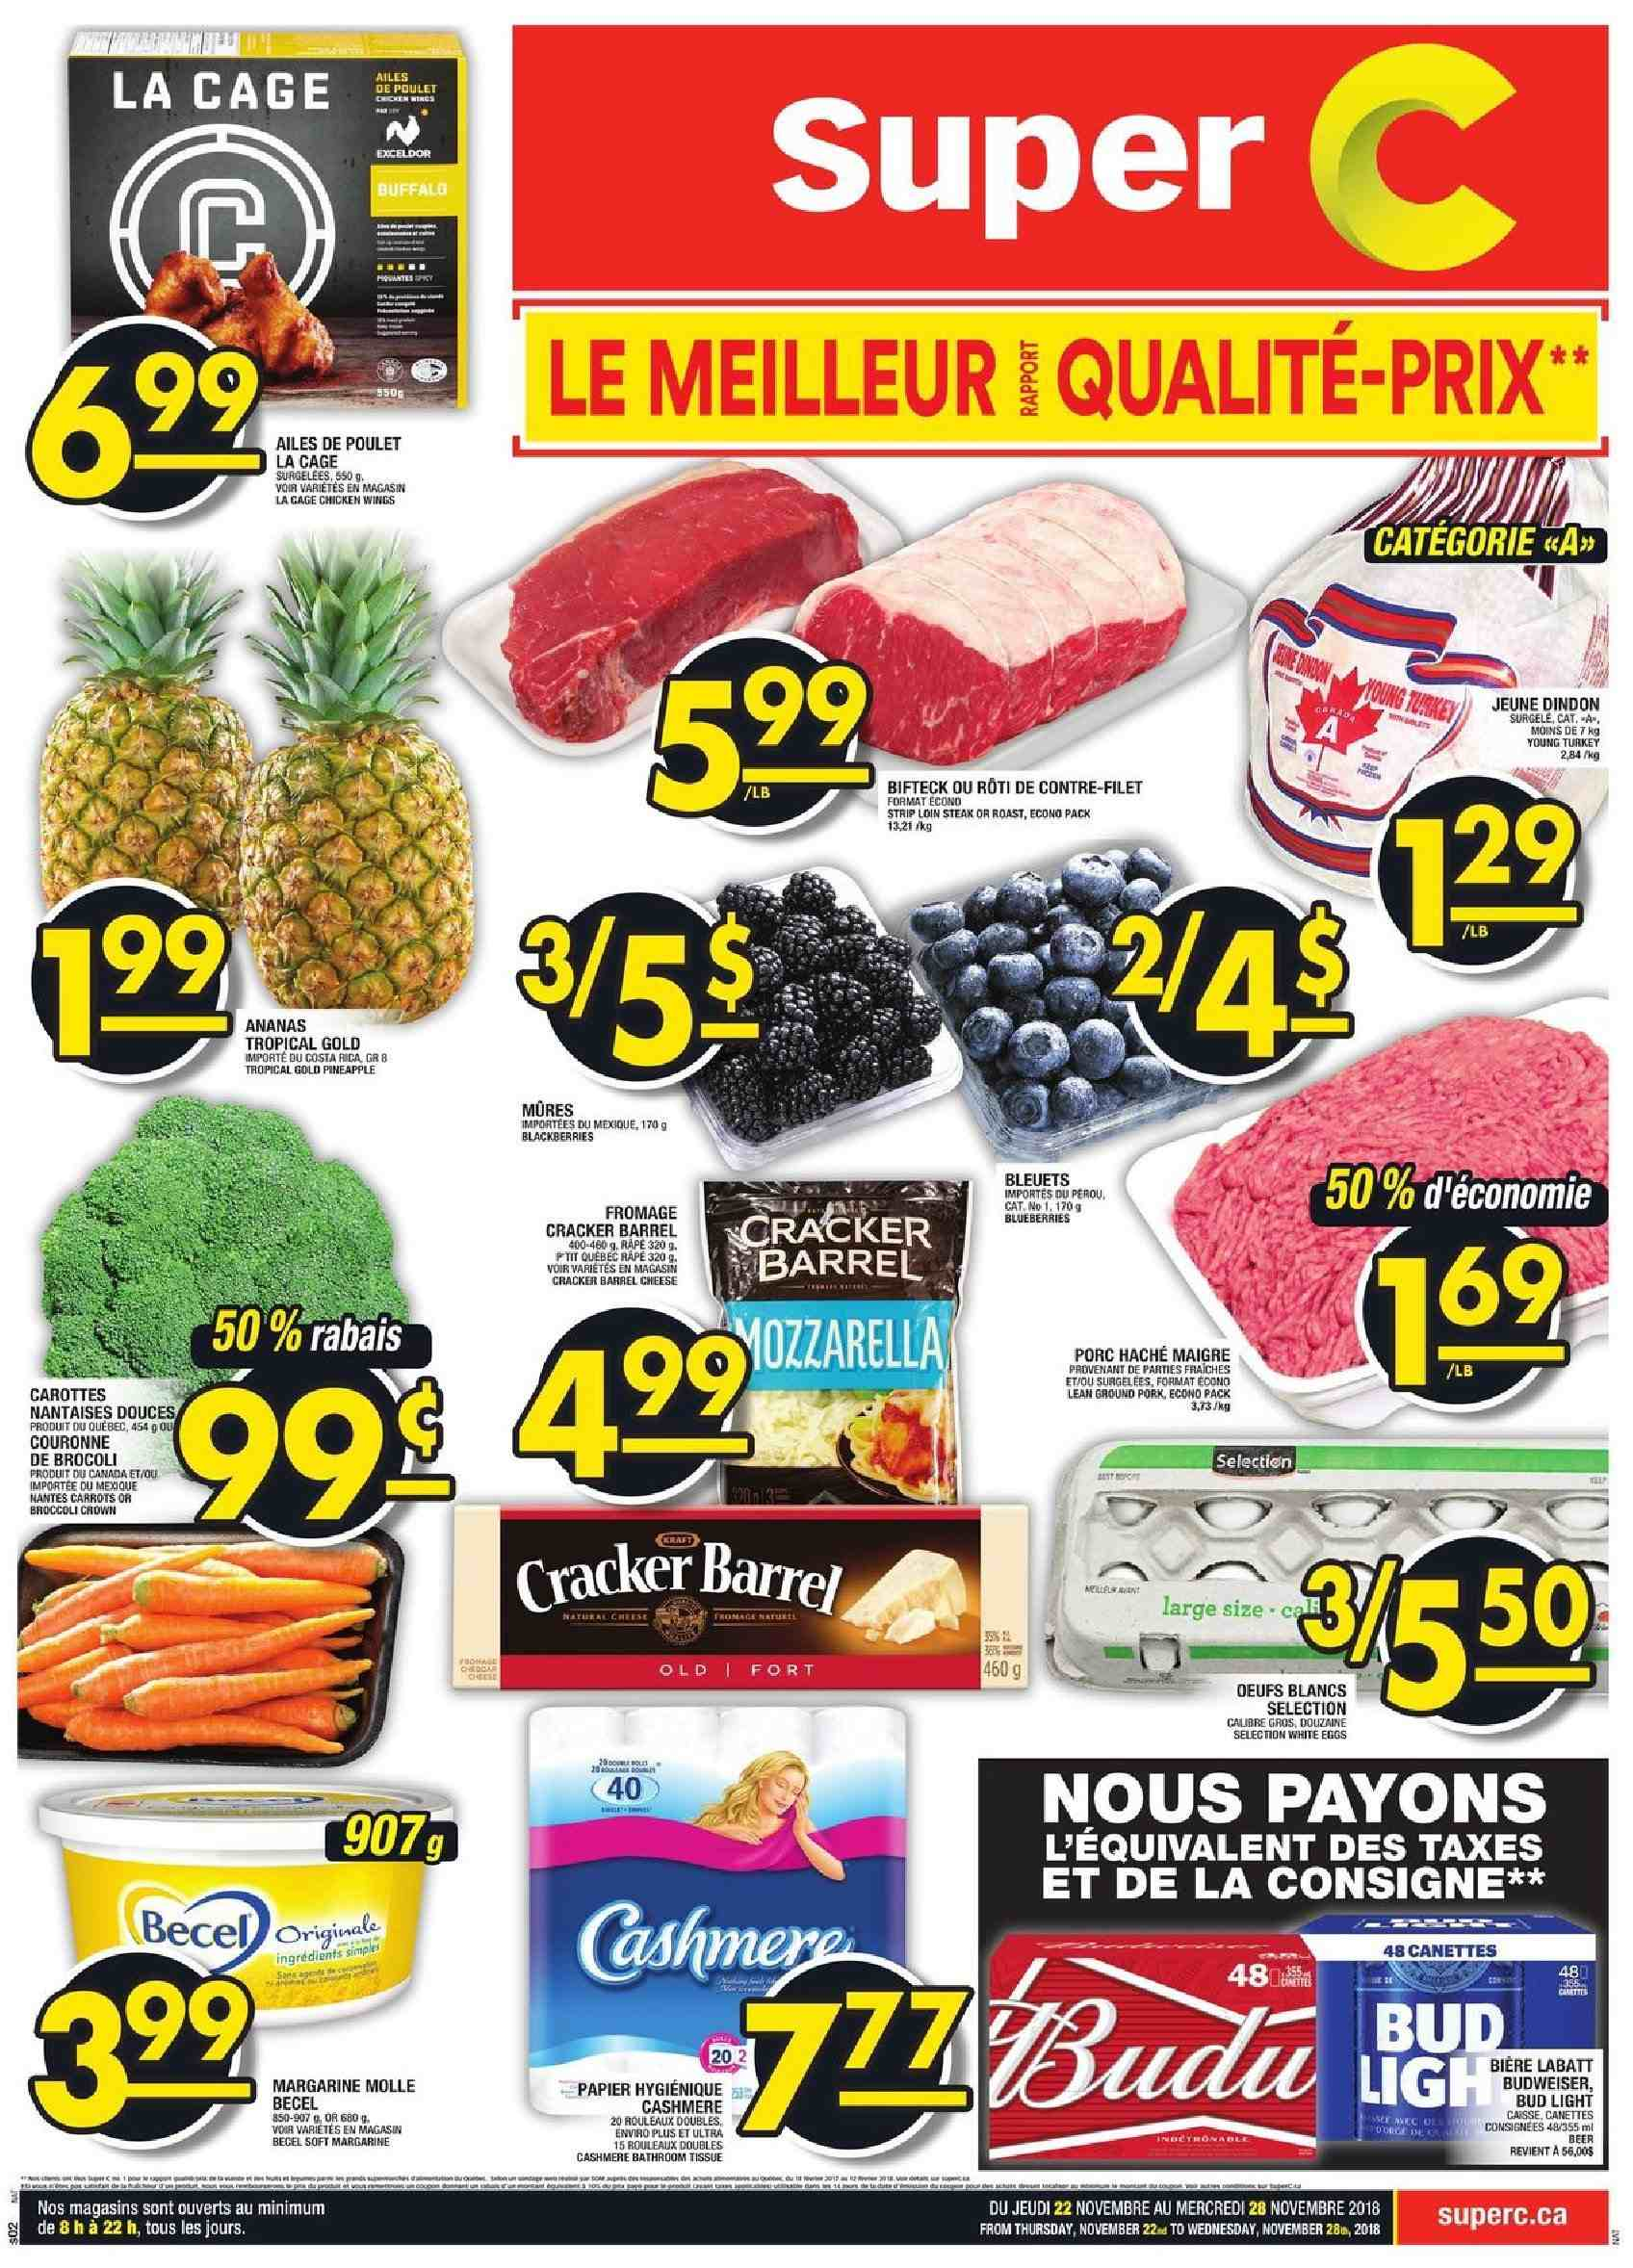 Super C Flyer - November 22, 2018 - November 28, 2018 - Sales products - blackberries, blueberries, broccoli, budweiser, carrots, ground pork, margarine, turkey, pineapple, pork meat, chicken, chicken wings, steak, cheese, bud light, cracker, poulet, porc, ananas, bière, brocoli, carotte, couronne, fromage, œufs, papier, râpé, crown. Page 1.